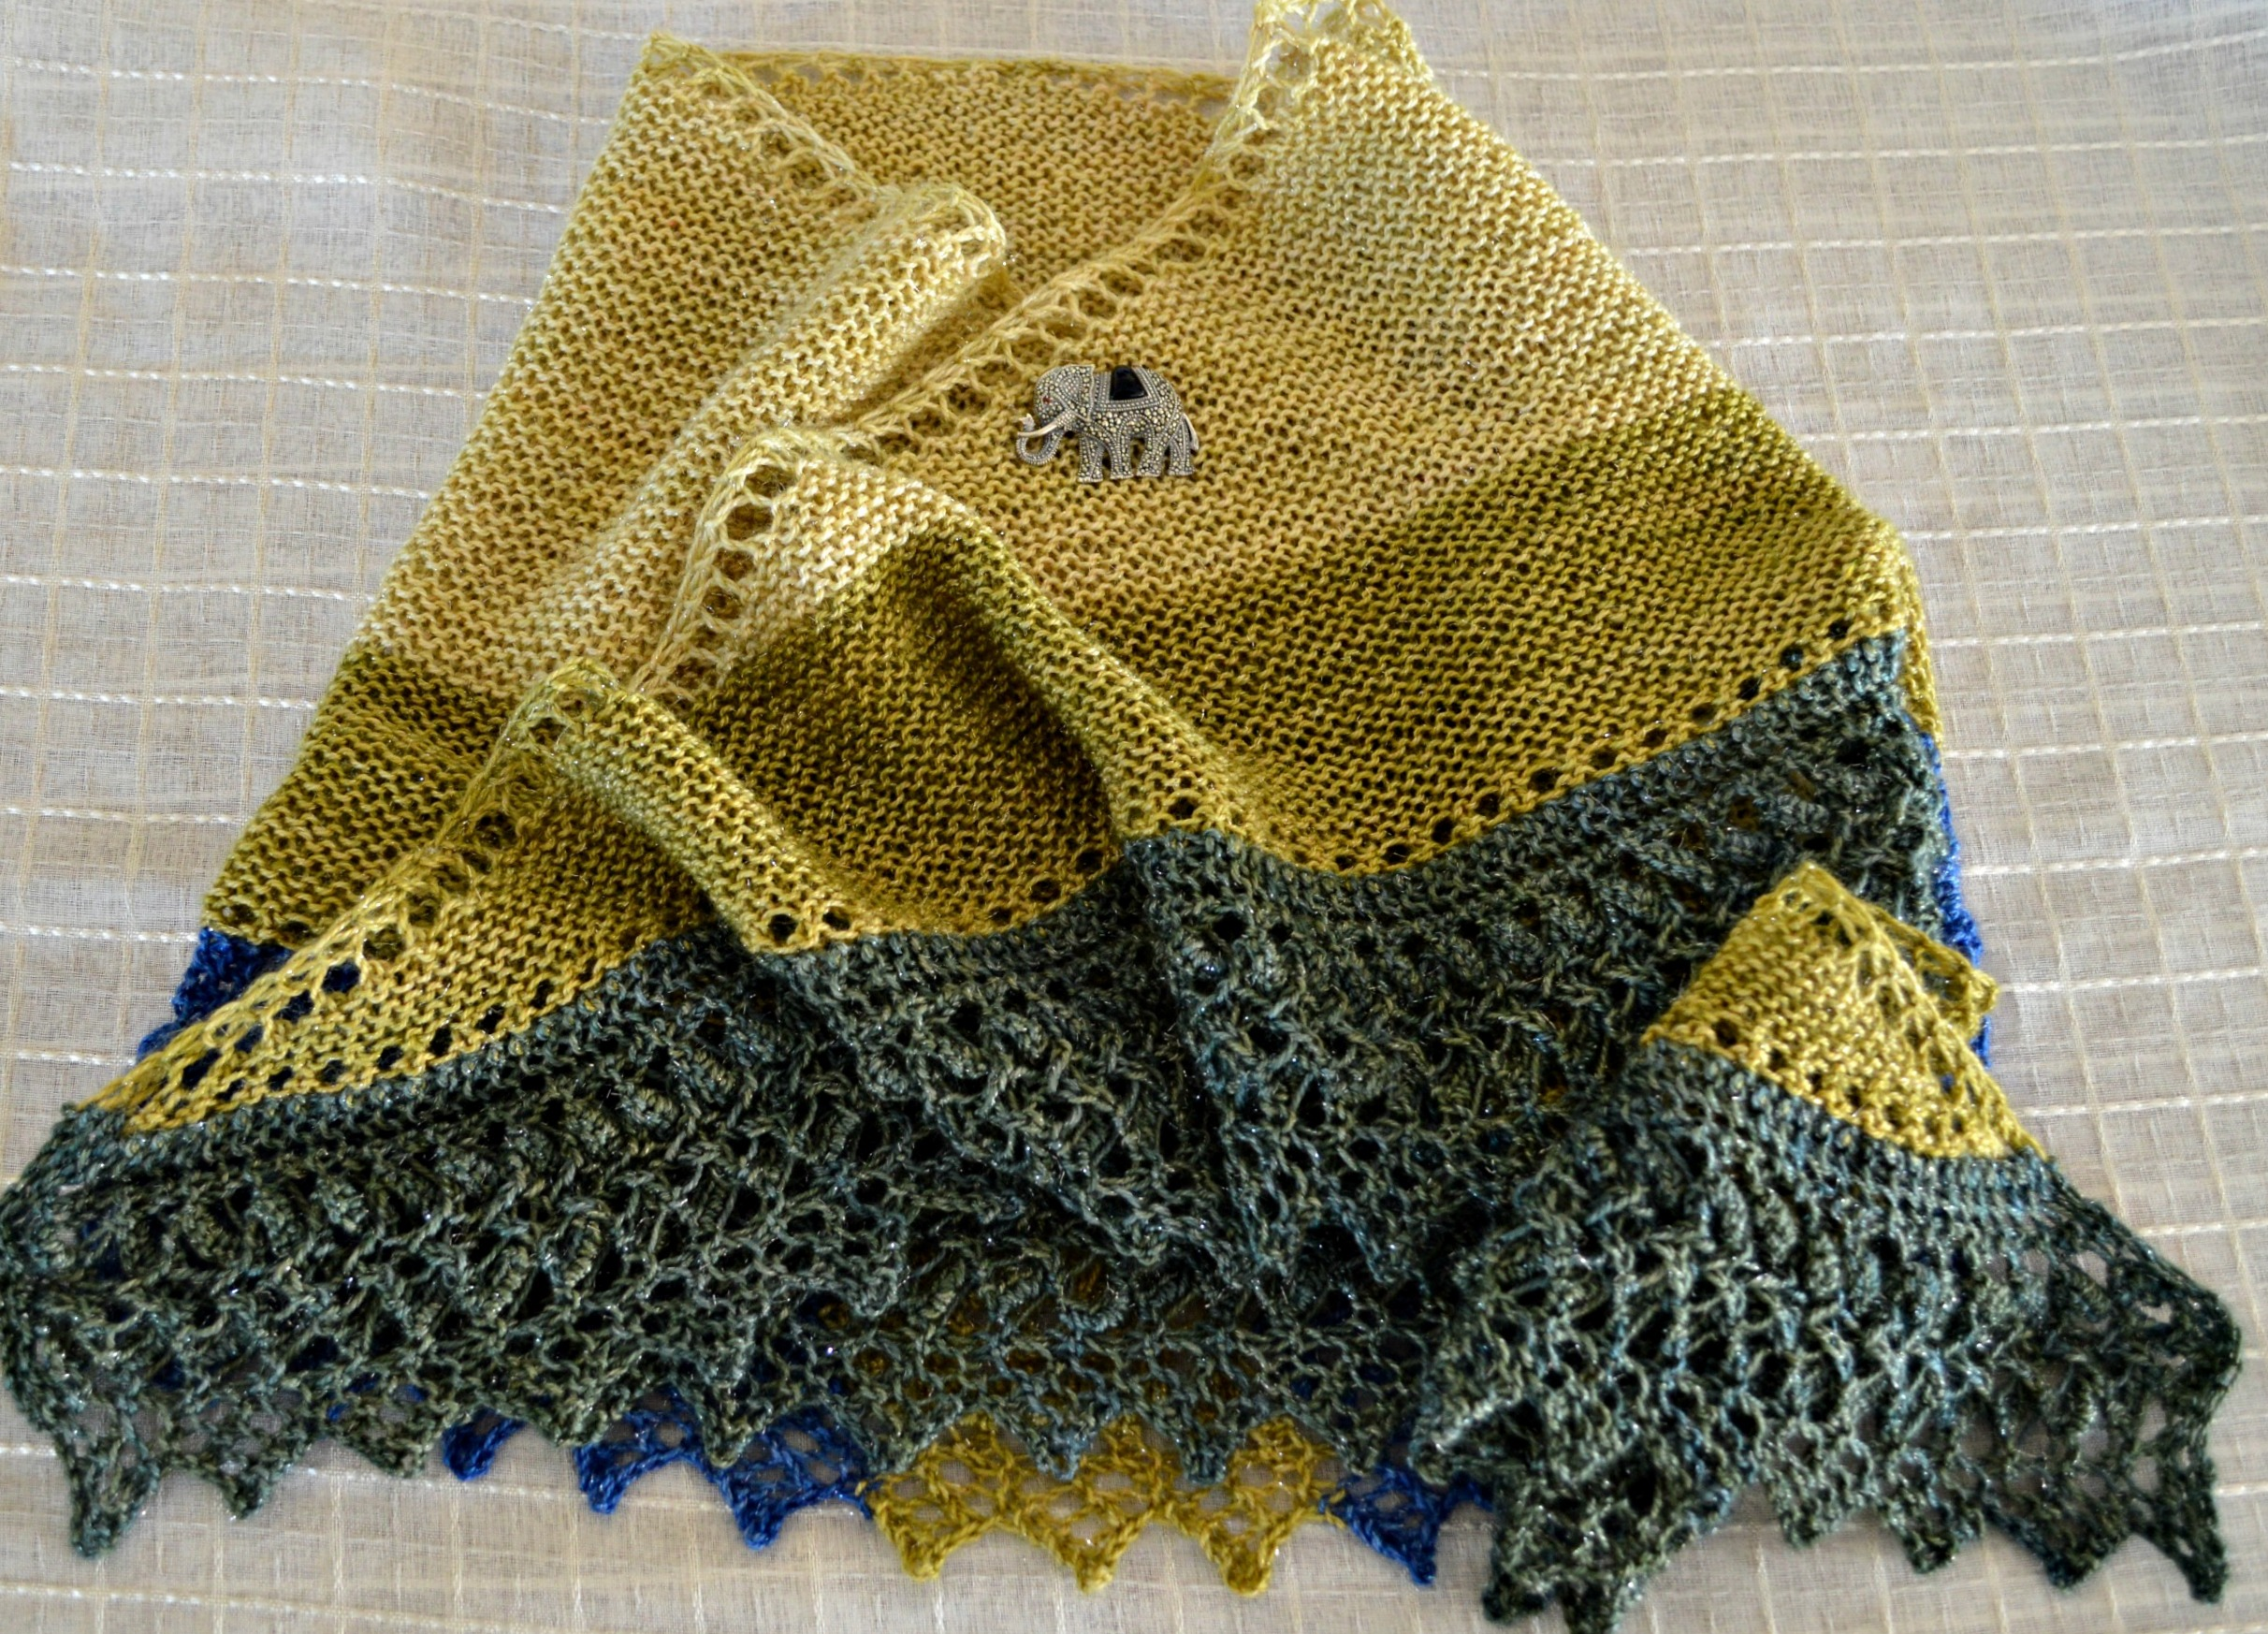 A Shawl for Fall with an Antique Knit-on Lace Edging | This Man Knits